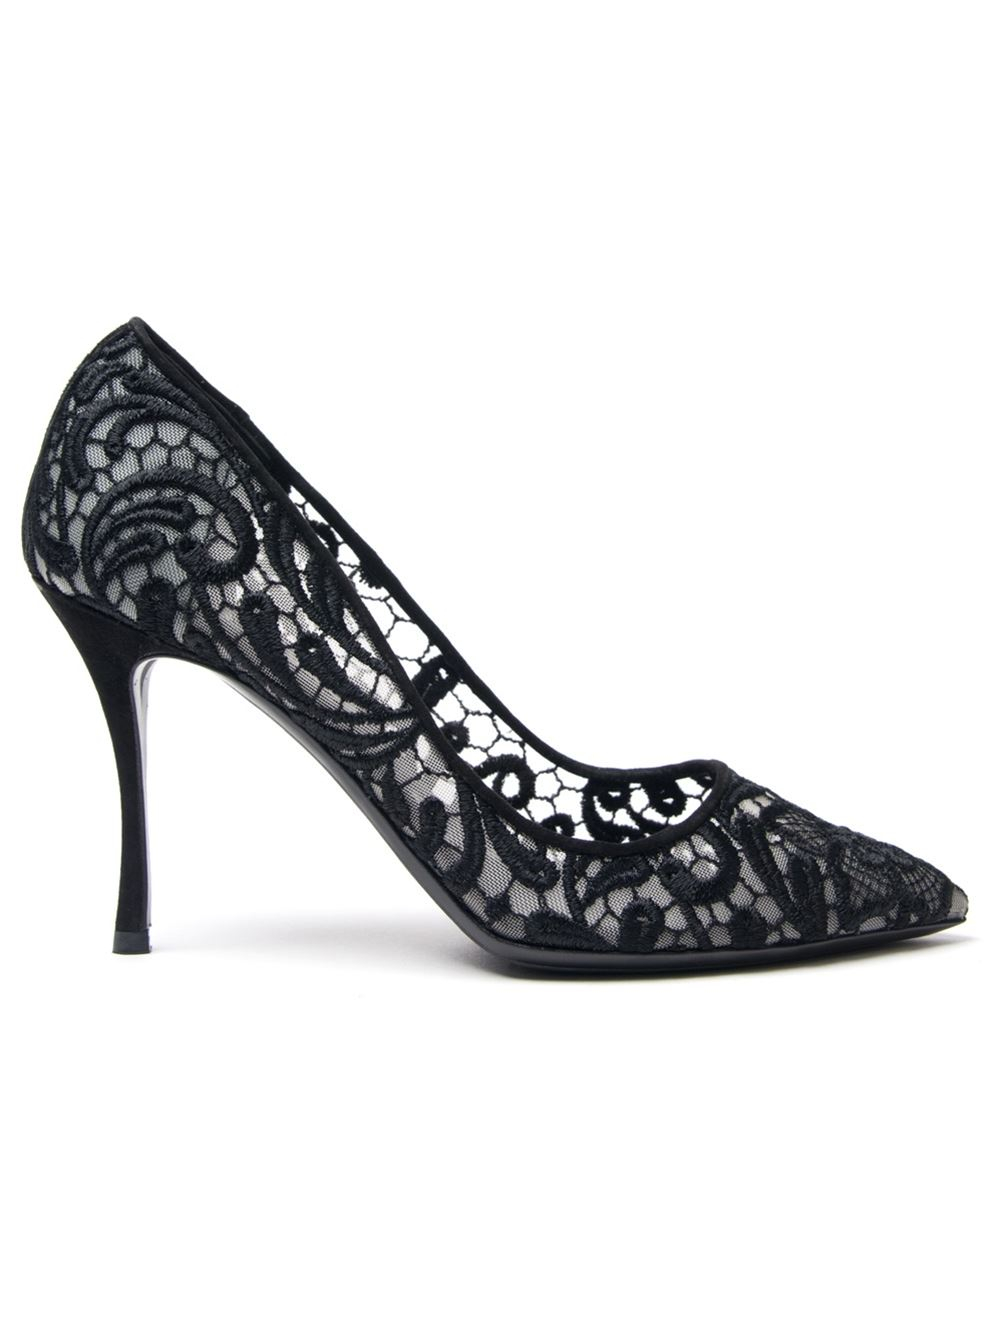 Nicholas Kirkwood Lace Pointed-Toe Pumps buy cheap purchase free shipping pay with visa cheap sale 100% authentic LQf4m7DT4